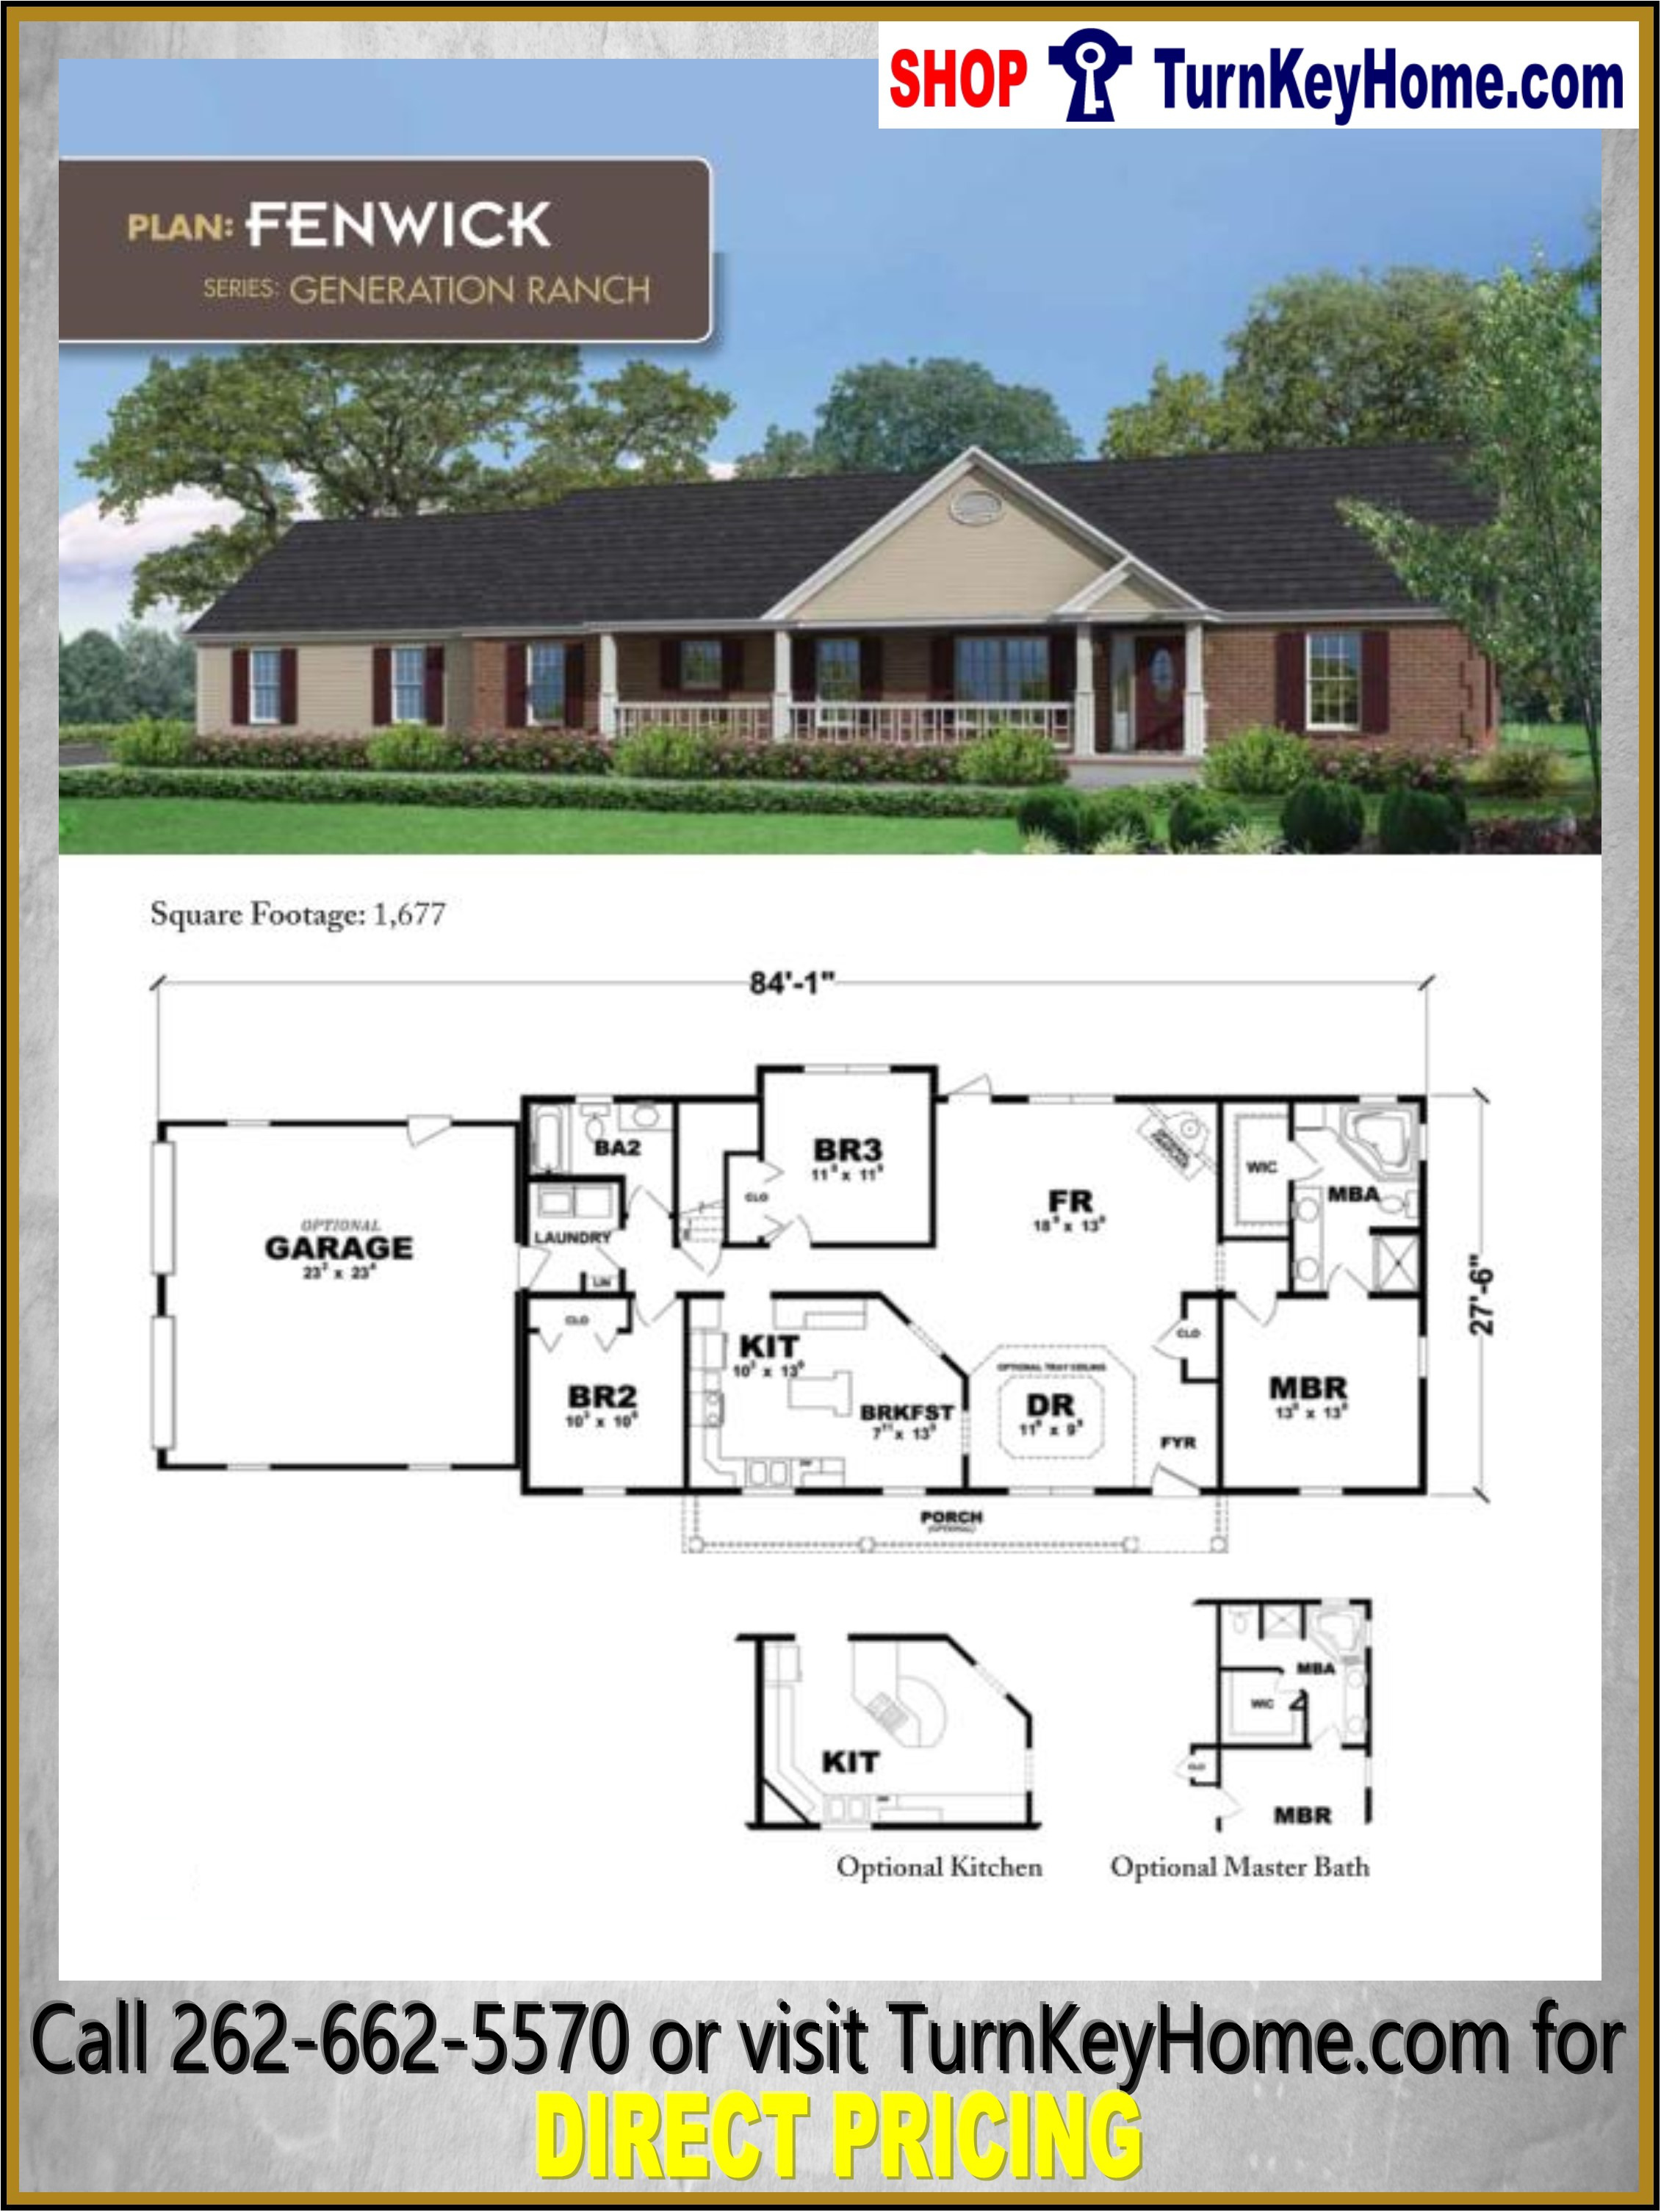 Affordable Ranch Home Plans Luxury Fenwick Ranch Style Home 3 Bed 2 Bath Plan 1677 Sf Priced